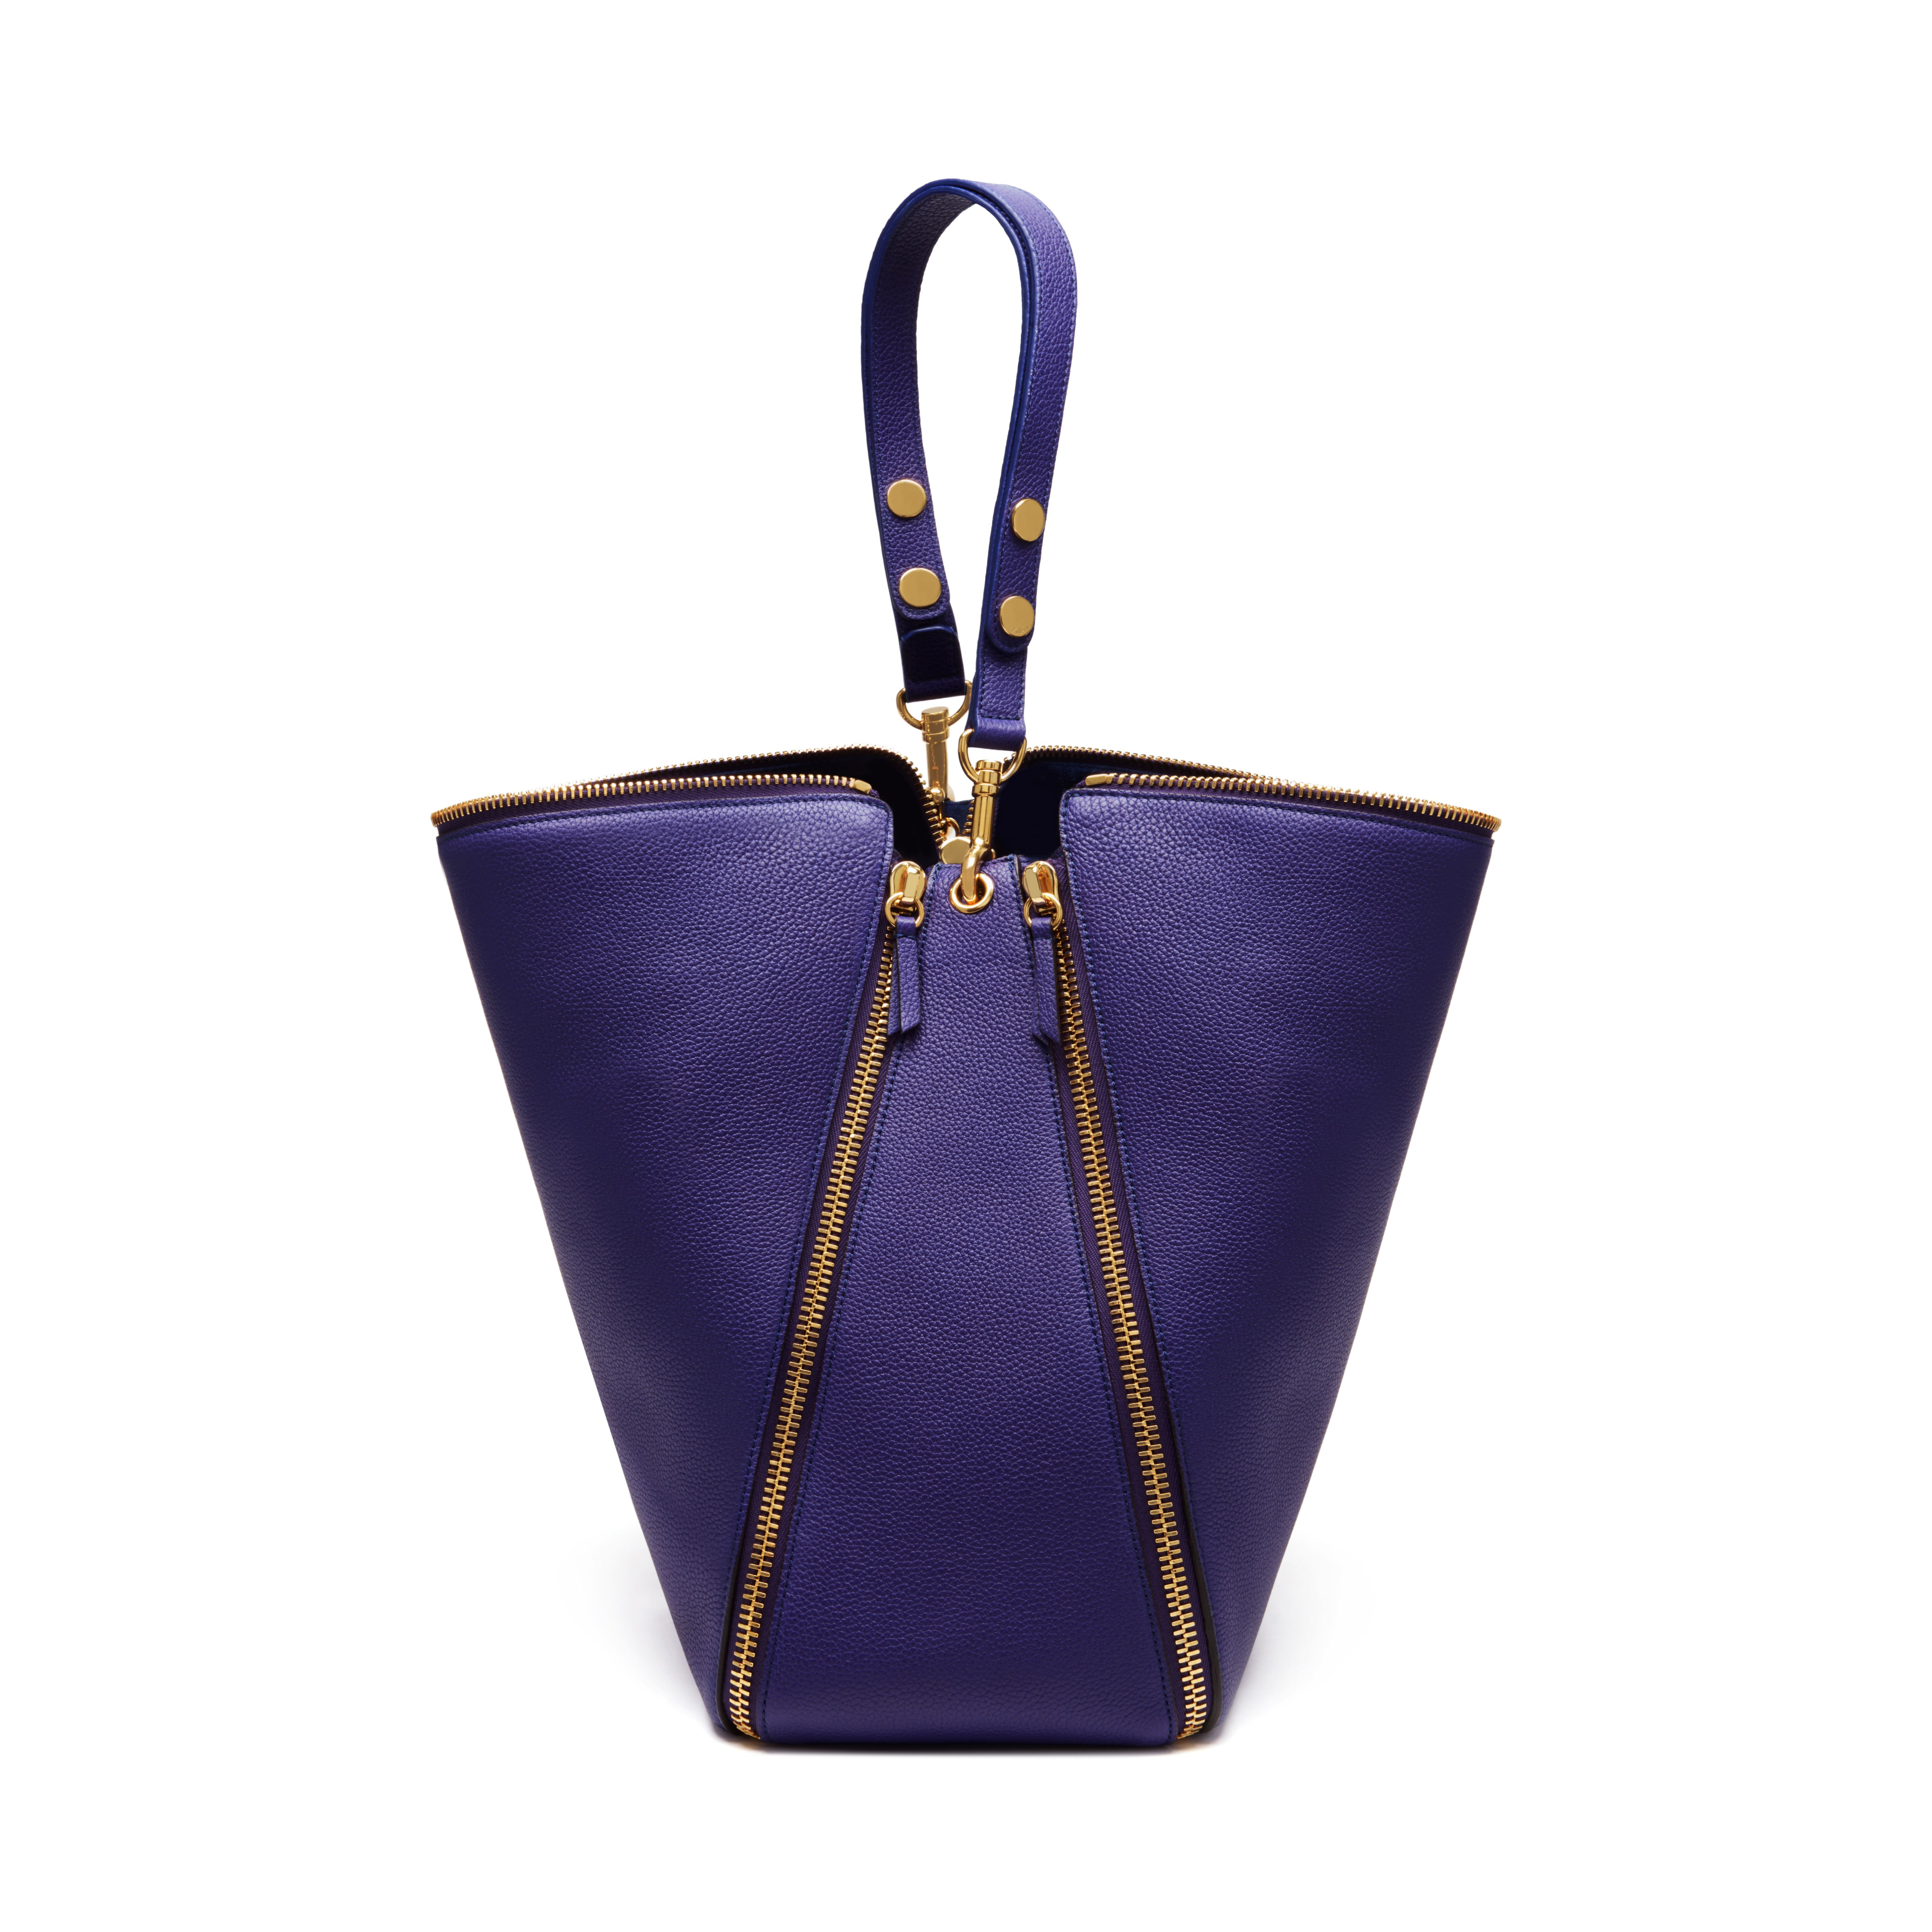 0629a15442 Mulberry Camden Leather Tote Bag in Blue - Lyst